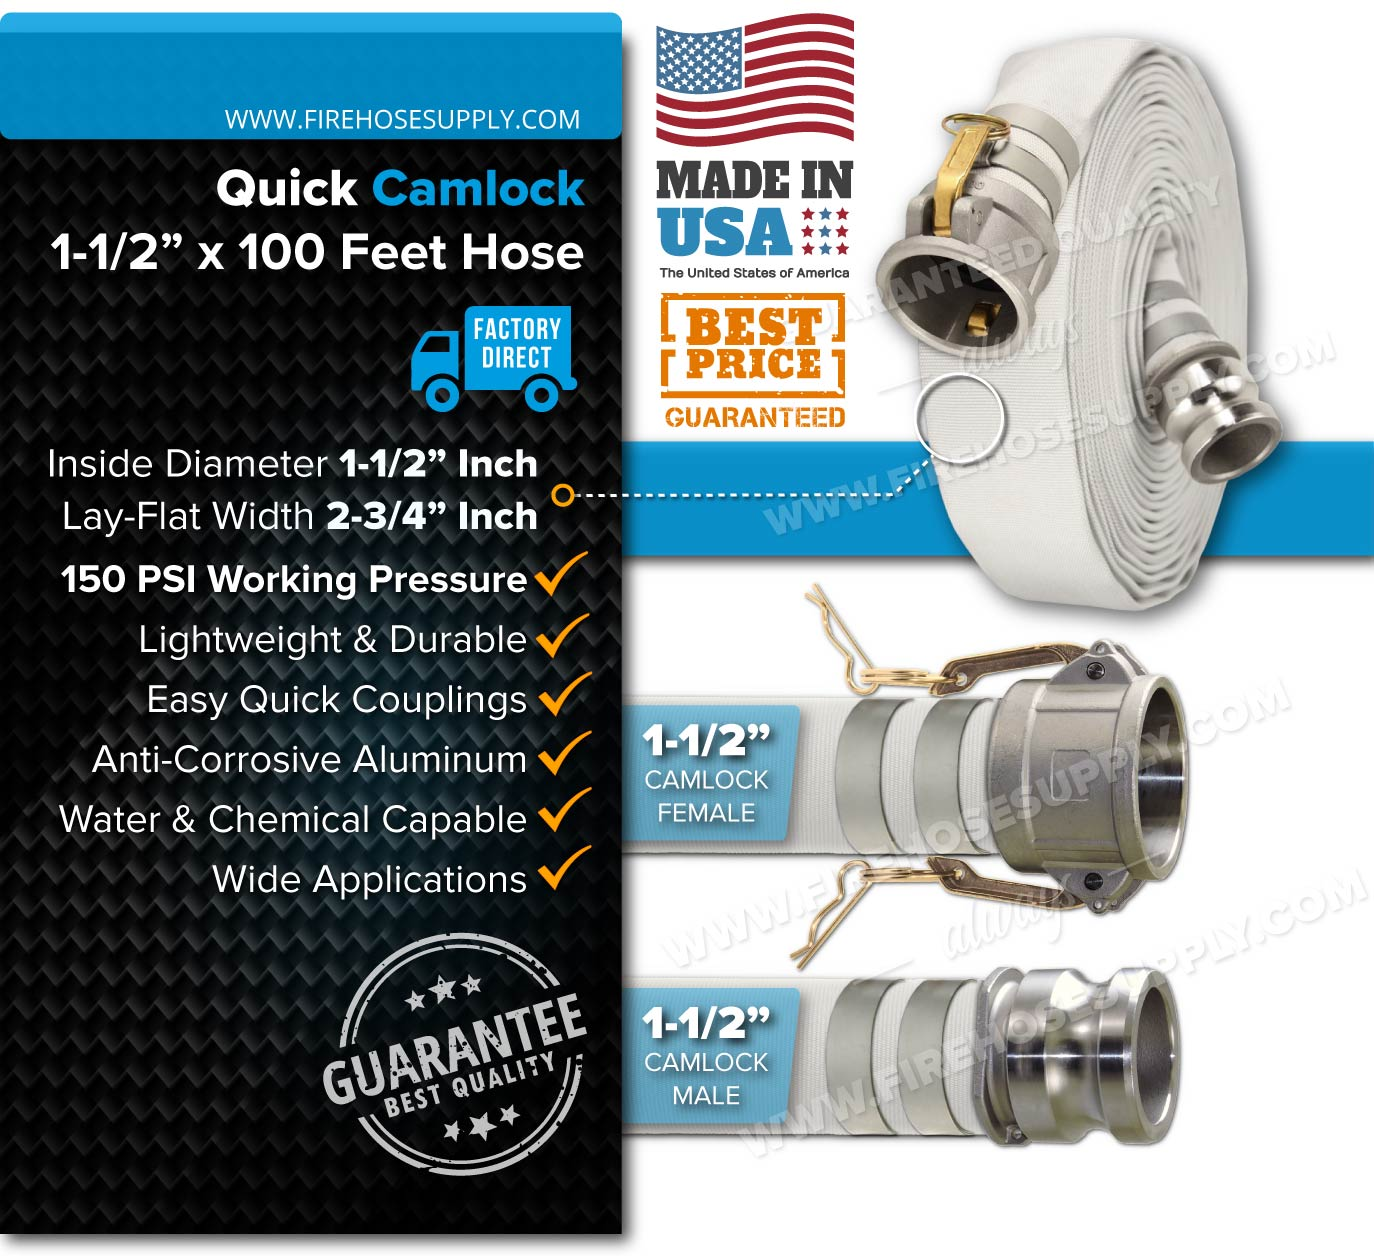 1.5 inch camlock hose woven single layer 100 feet white specifications